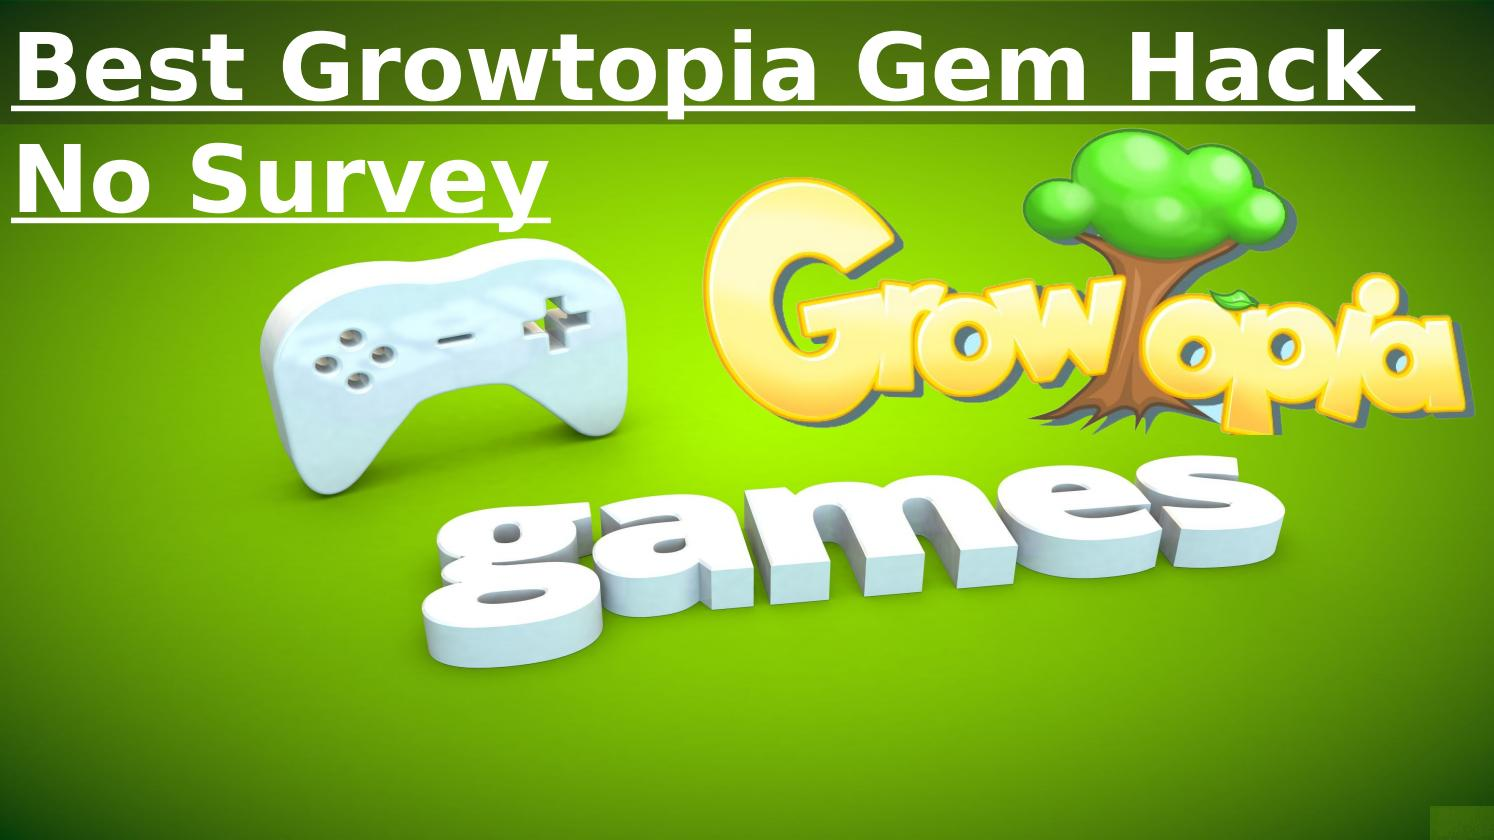 growtopia gem hack no surveys best growtopia gem hack no survey by marrythomss issuu 9856